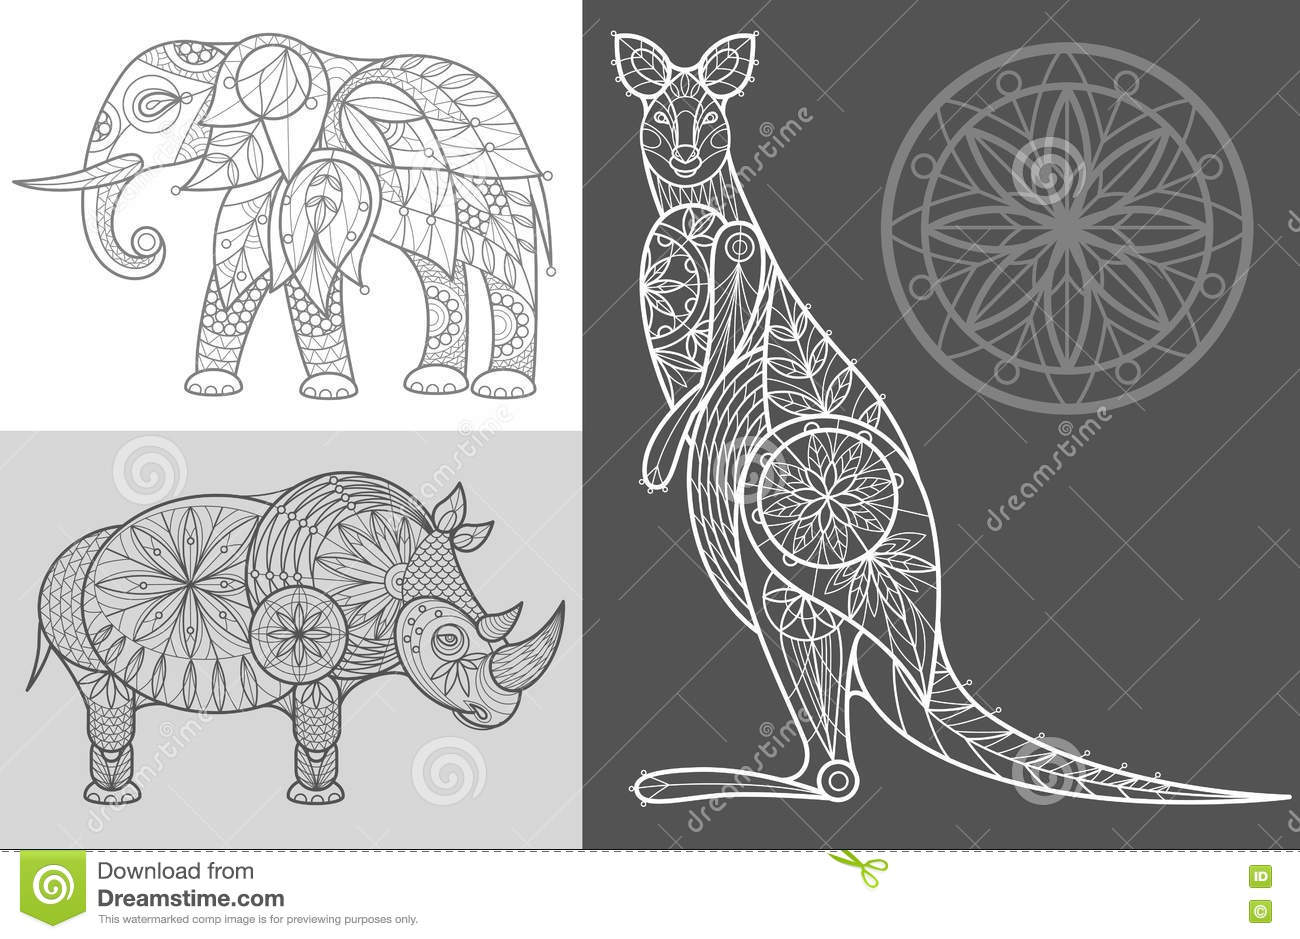 Vector Line Art Animals : Poster with ornamental animals stock vector illustration of